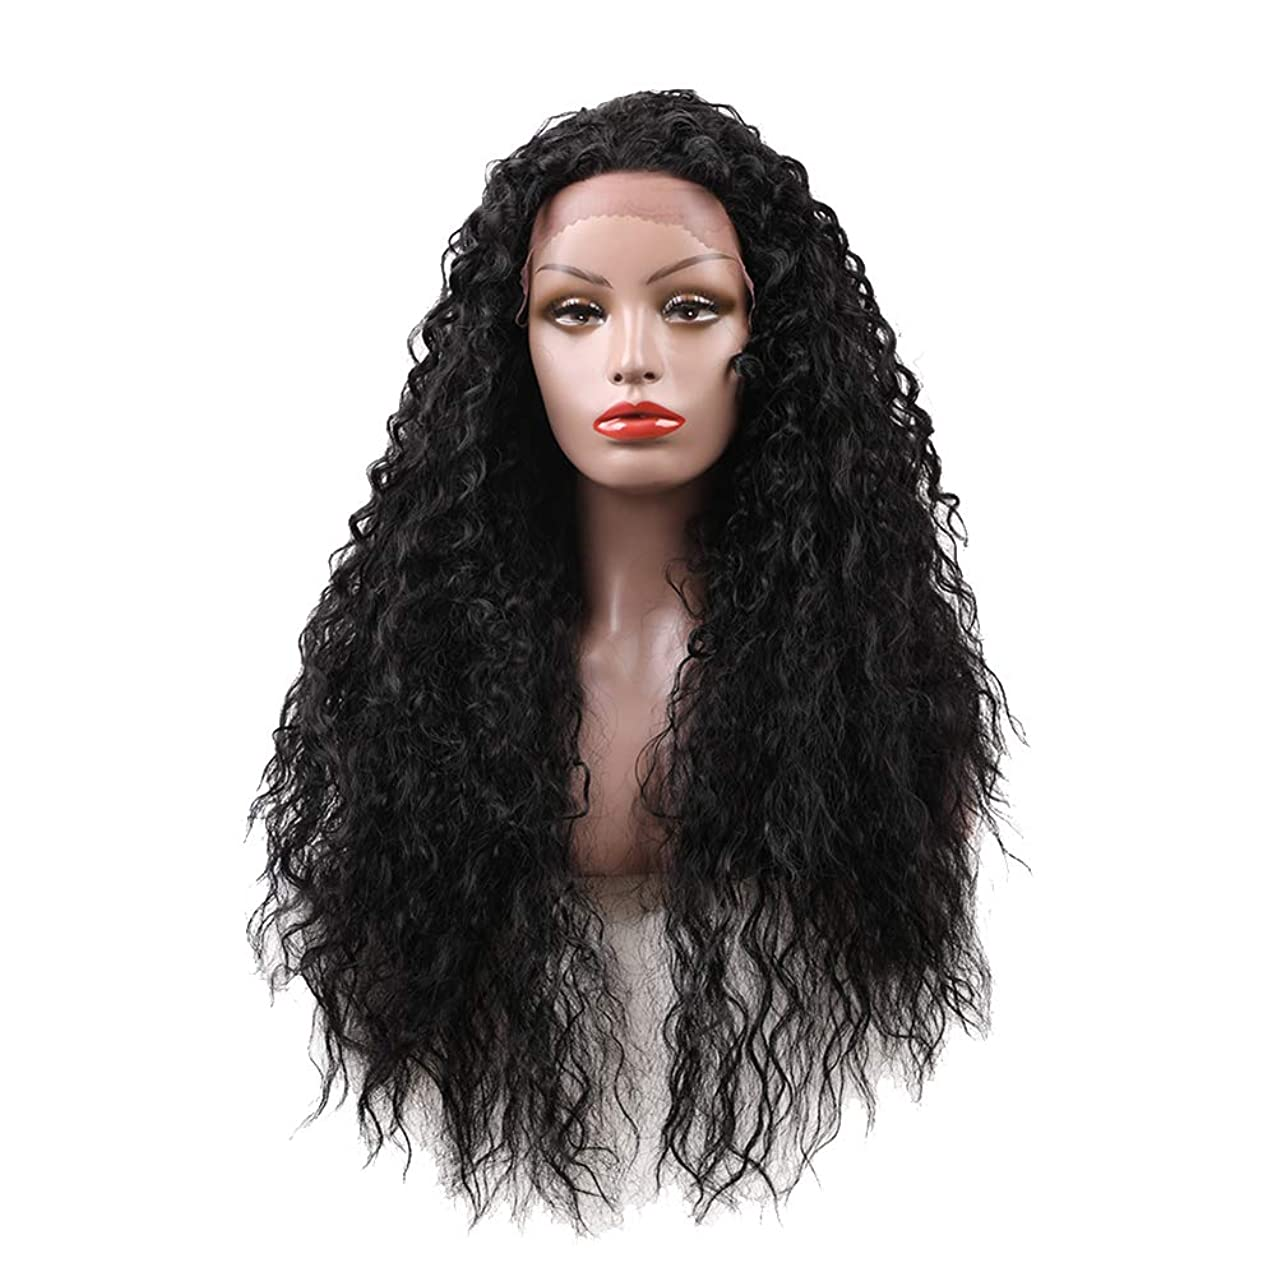 Butterfly Iron Women's Black High Temperature Fiber Long Curly Wig Cosplay Party Hairpiece